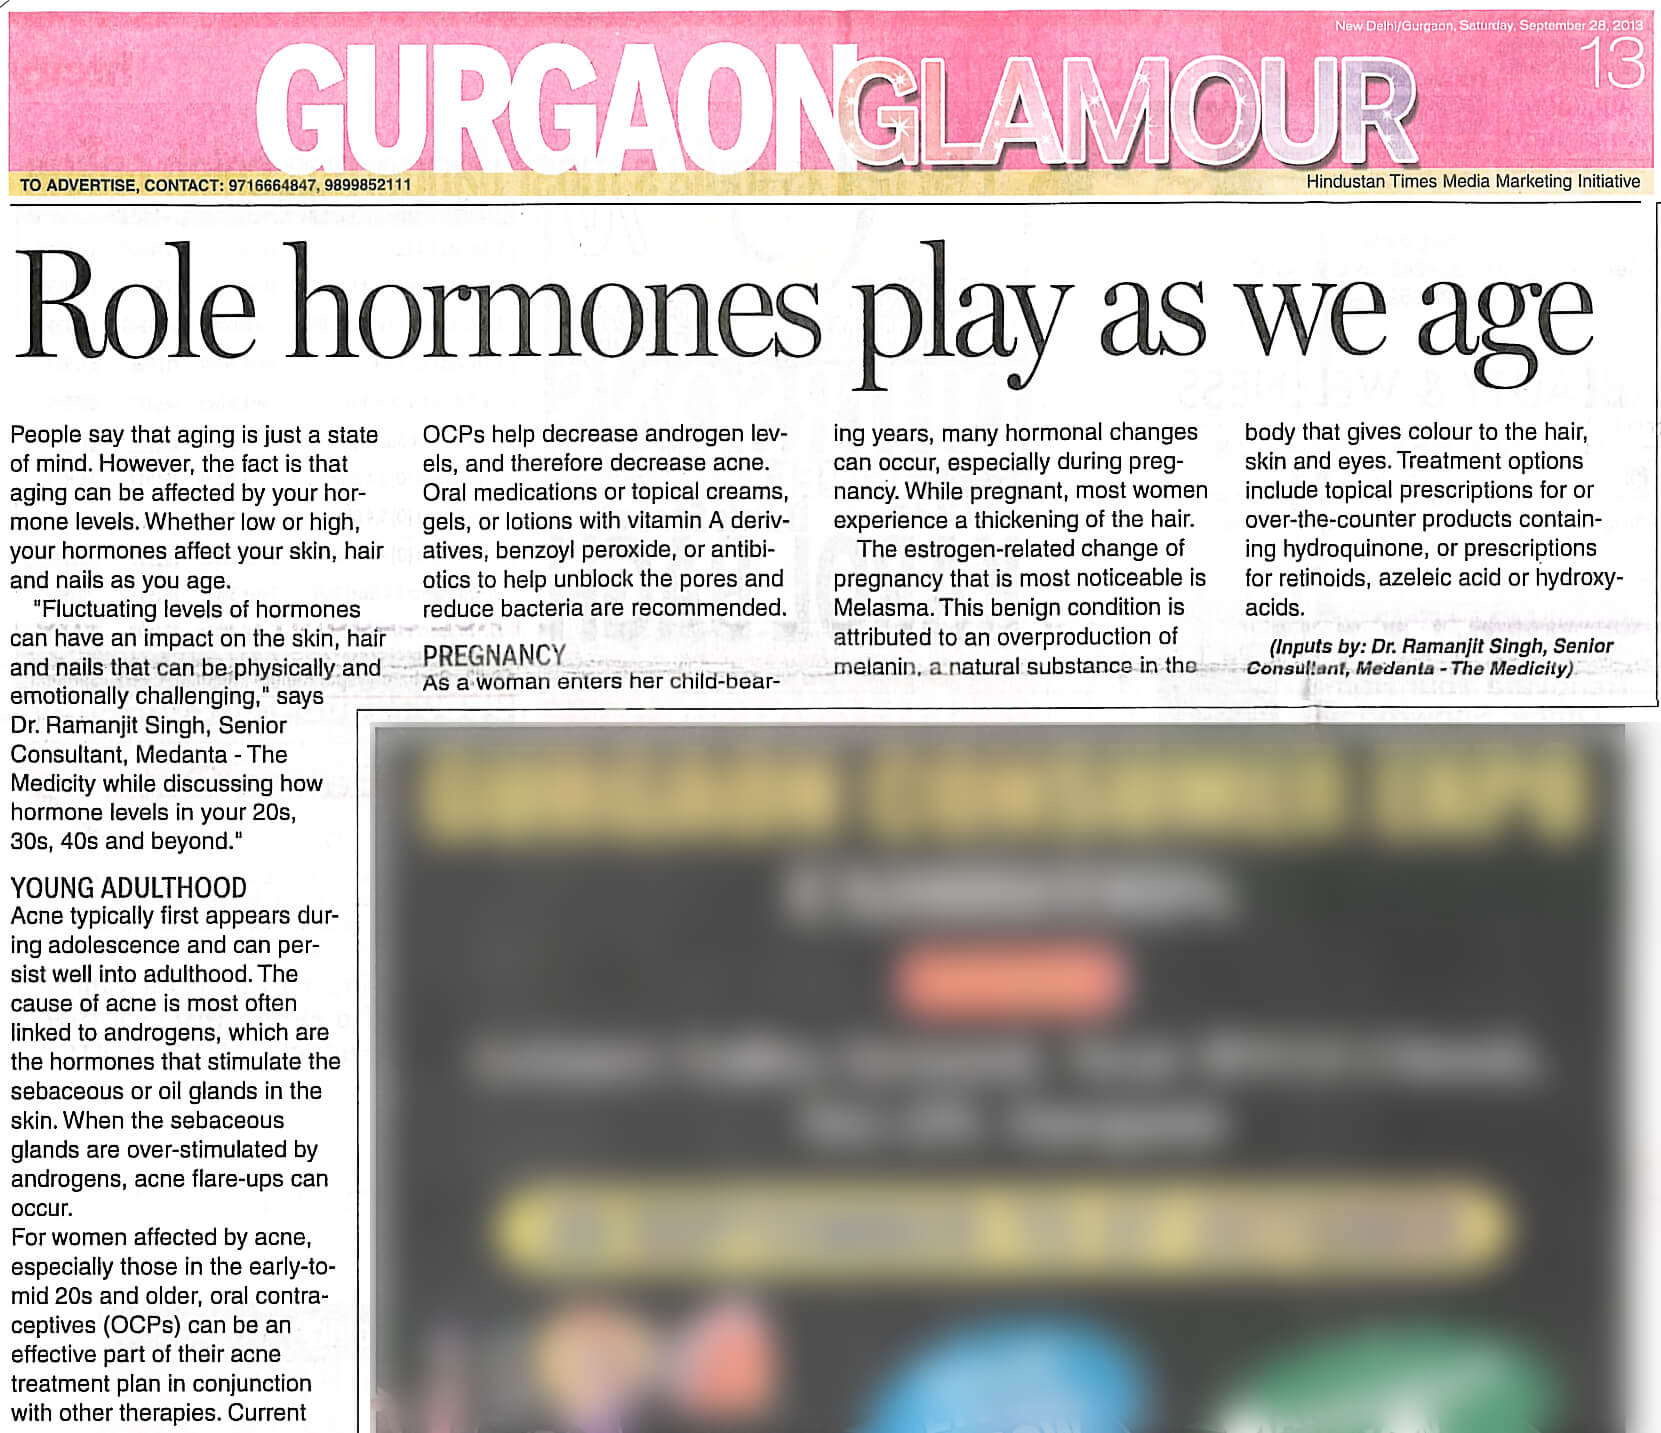 Role hormones play as we age